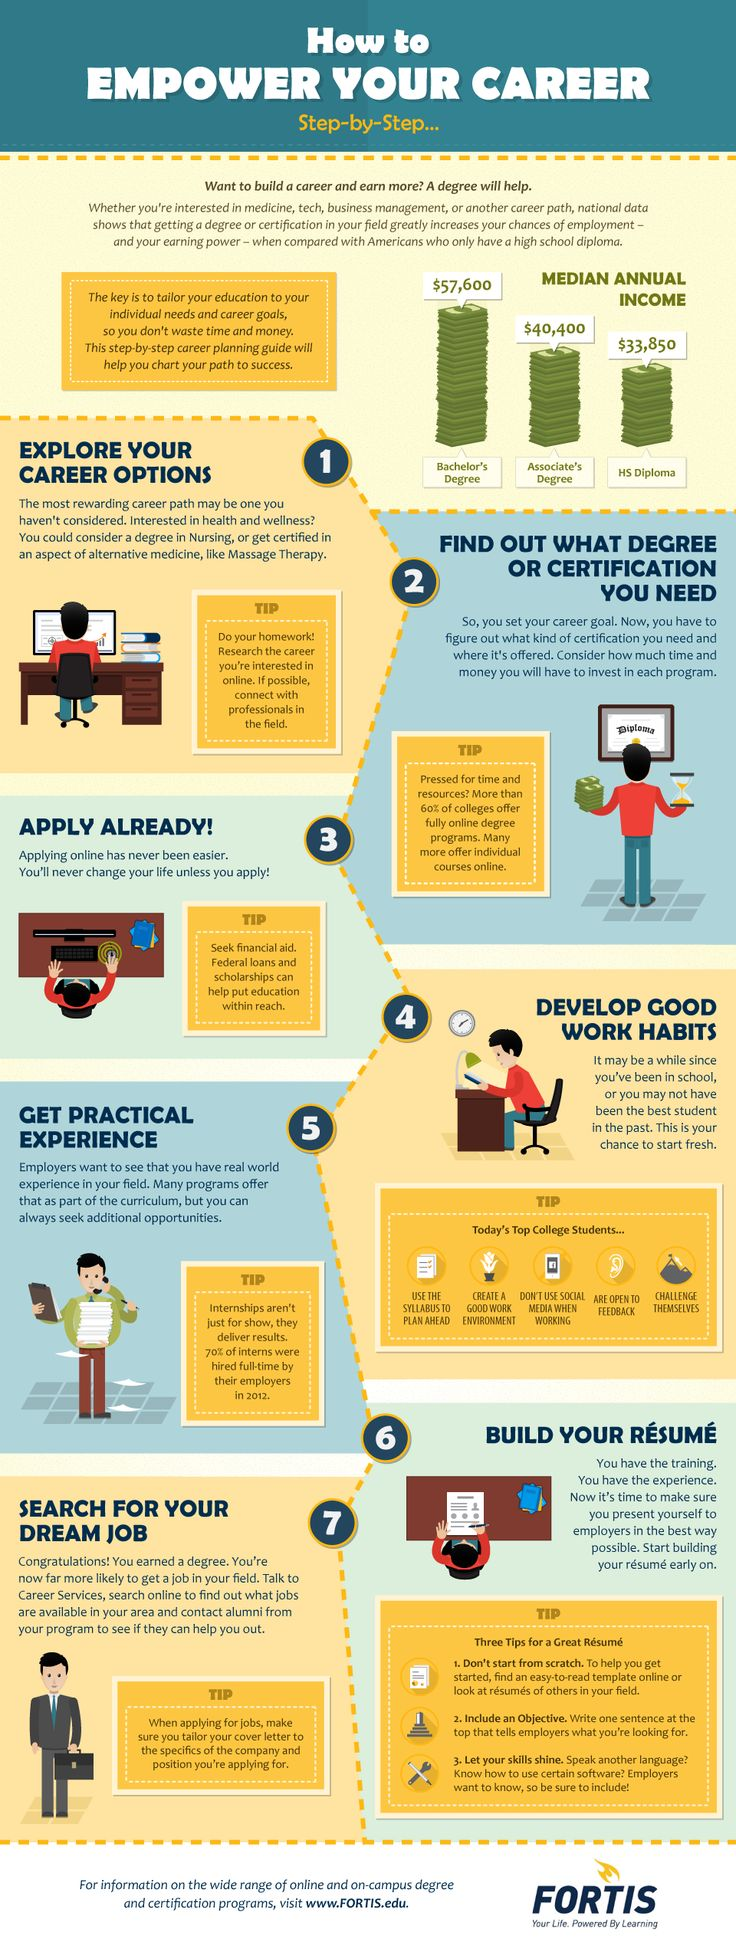 How to Empower Your Career - Step-by-Step #Infographic #Career #HowTo